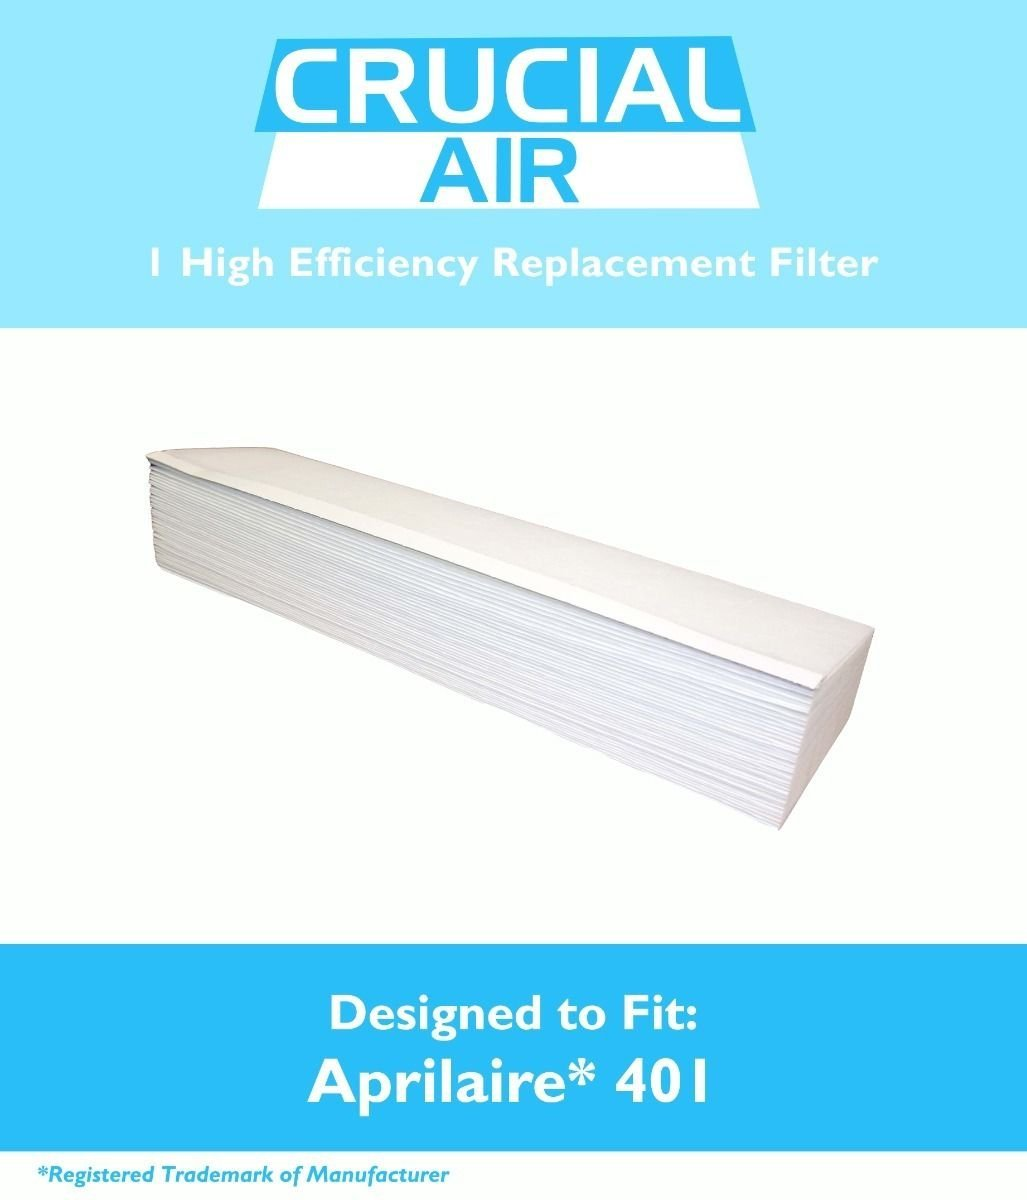 Aprilaire 401 Replacement Air Filter - Fits Space-Gard 2400 Air Purifiers - High Efficiency Replacement Air Filter - High Quality Replacement Air Filter